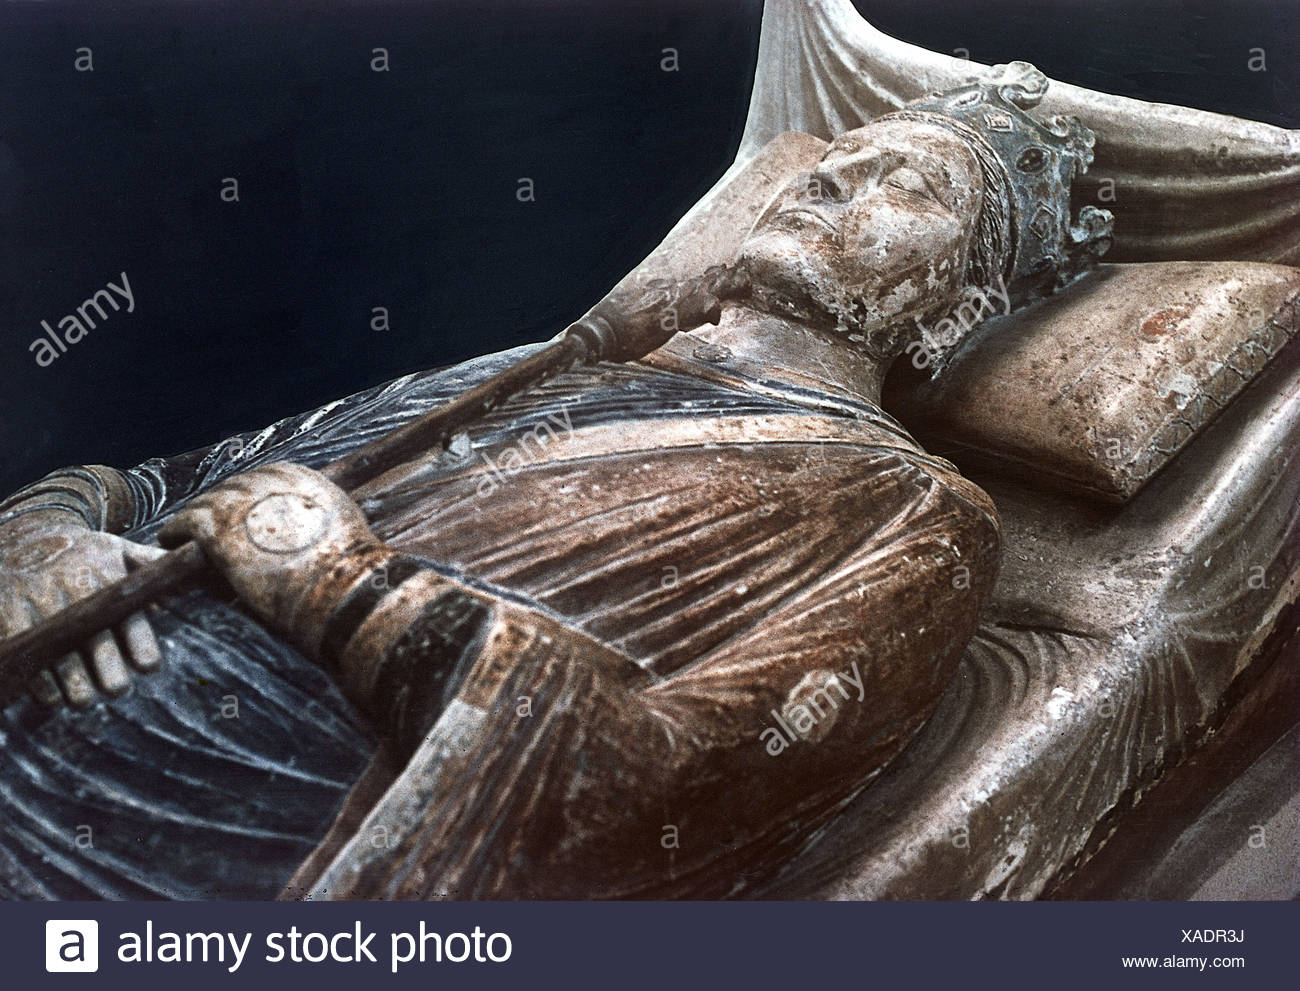 Henry II, 5.3.1133 - 6.7.1189, King of England 1154 - 1189, half length, tomb, Fontevrault, Additional-Rights-Clearances-NA - Stock Image